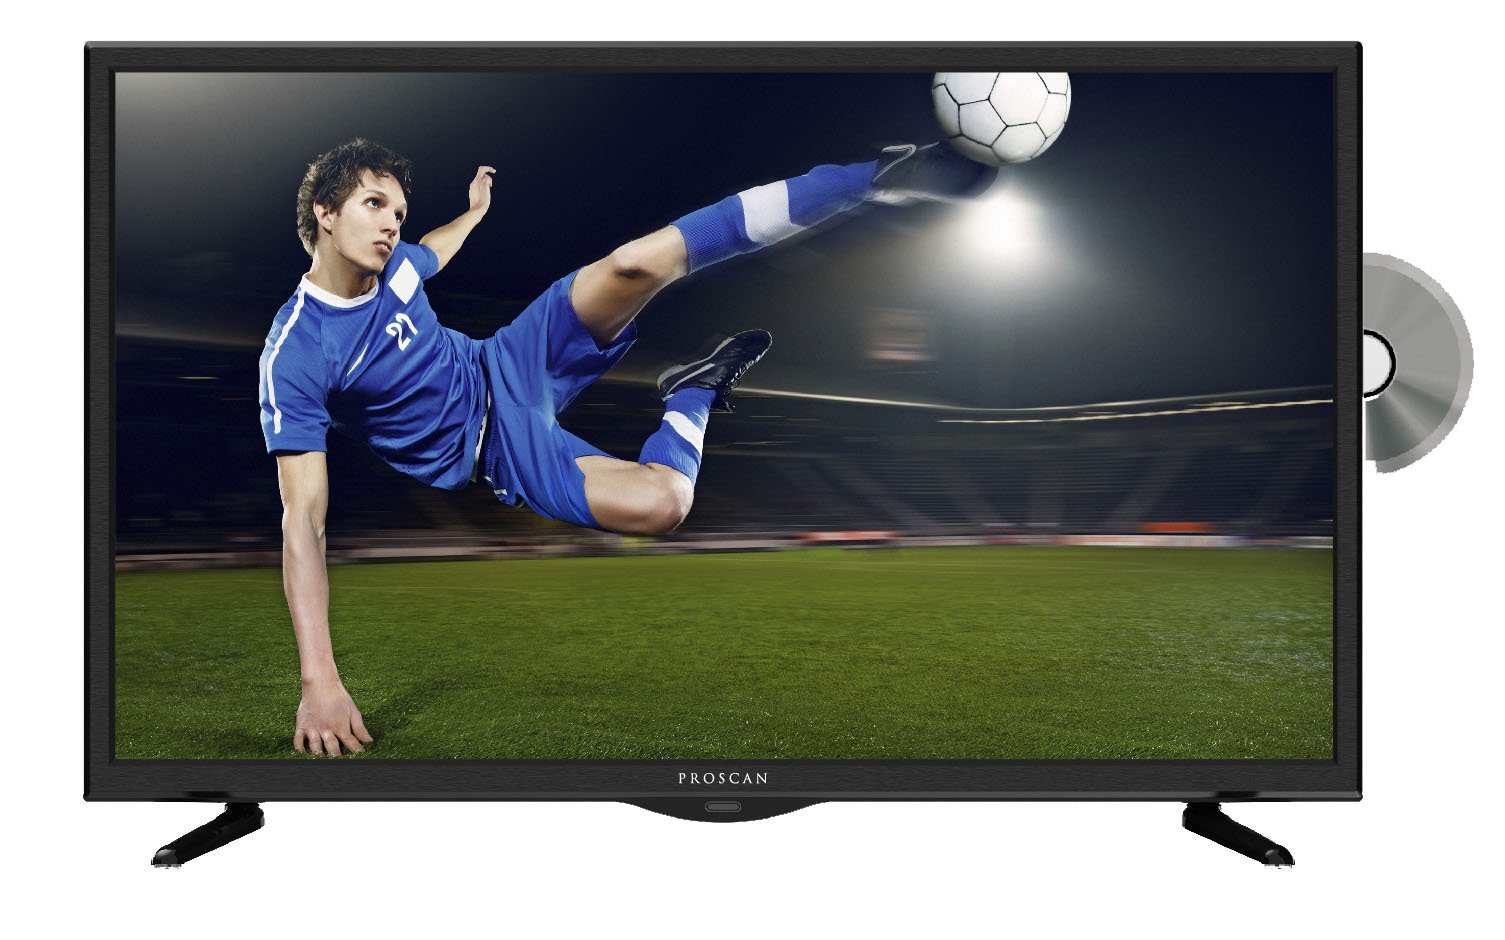 Proscan PLDV321300 32-Inch 720p 60Hz LED TV-DVD Combo by PROSCAN